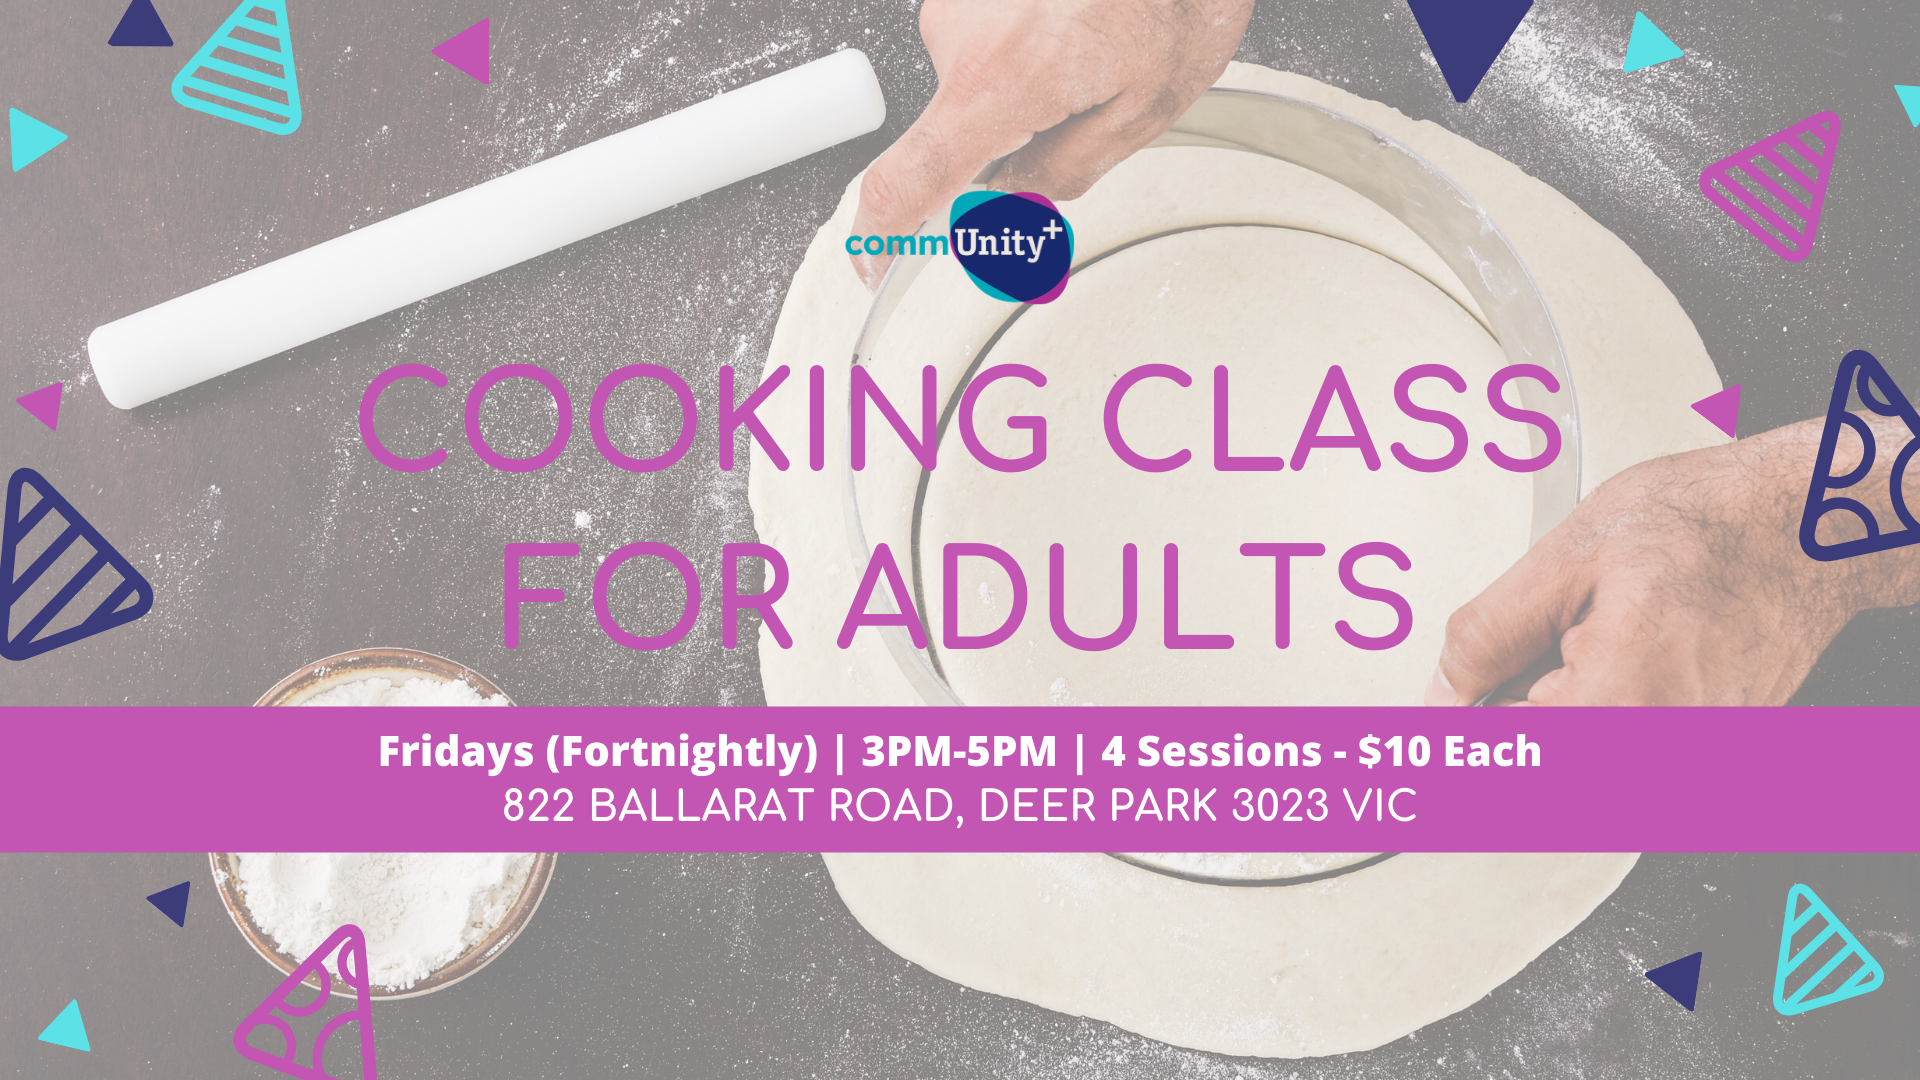 Cooking Class For Adults